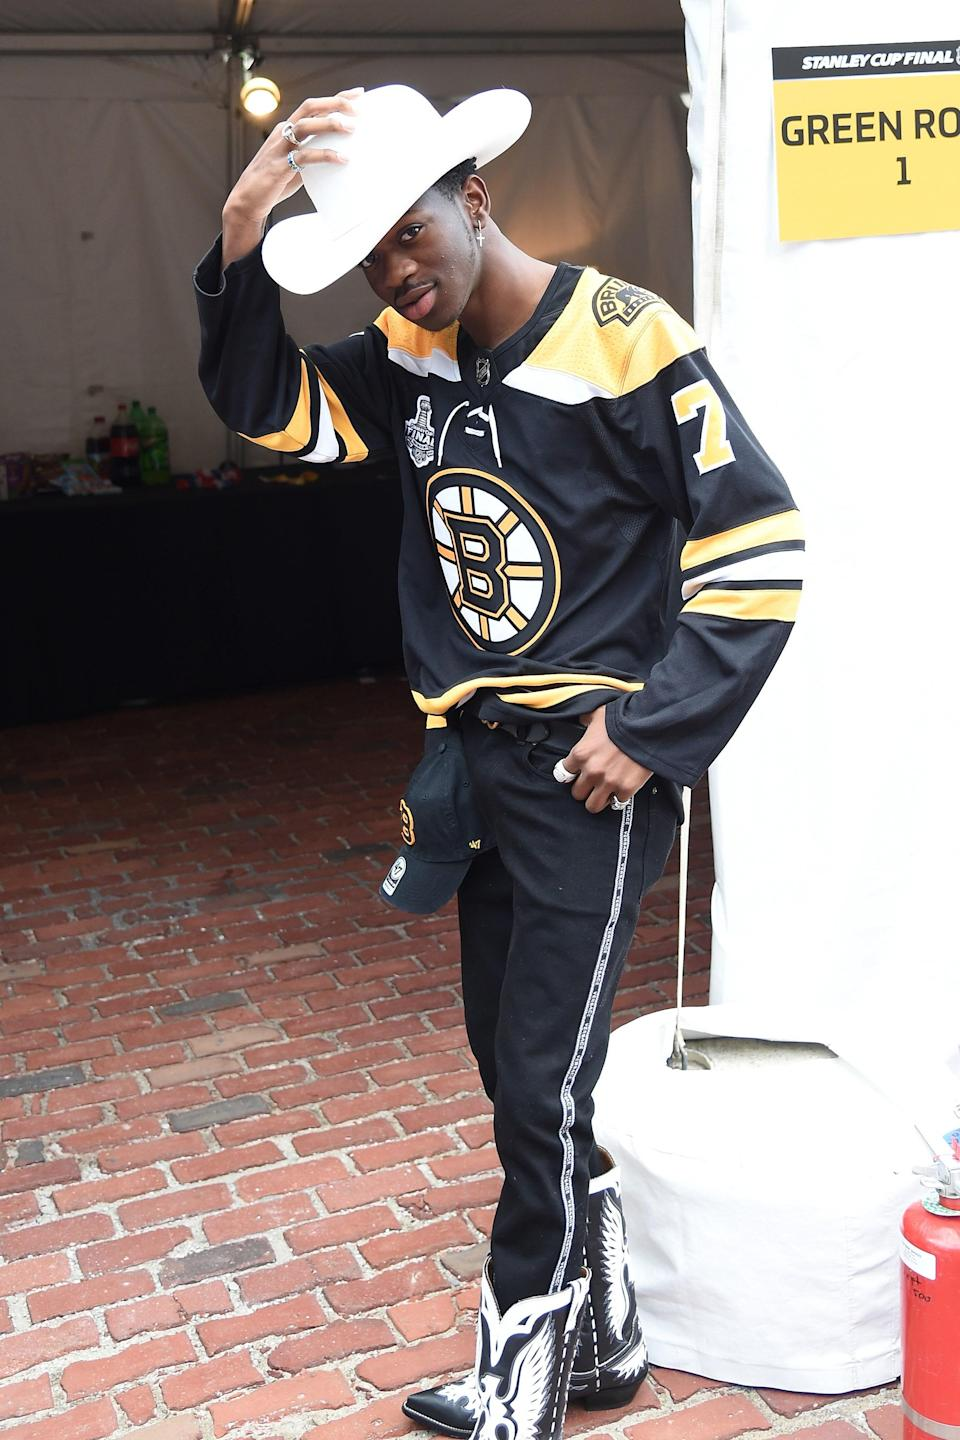 Repping the Boston Bruins!